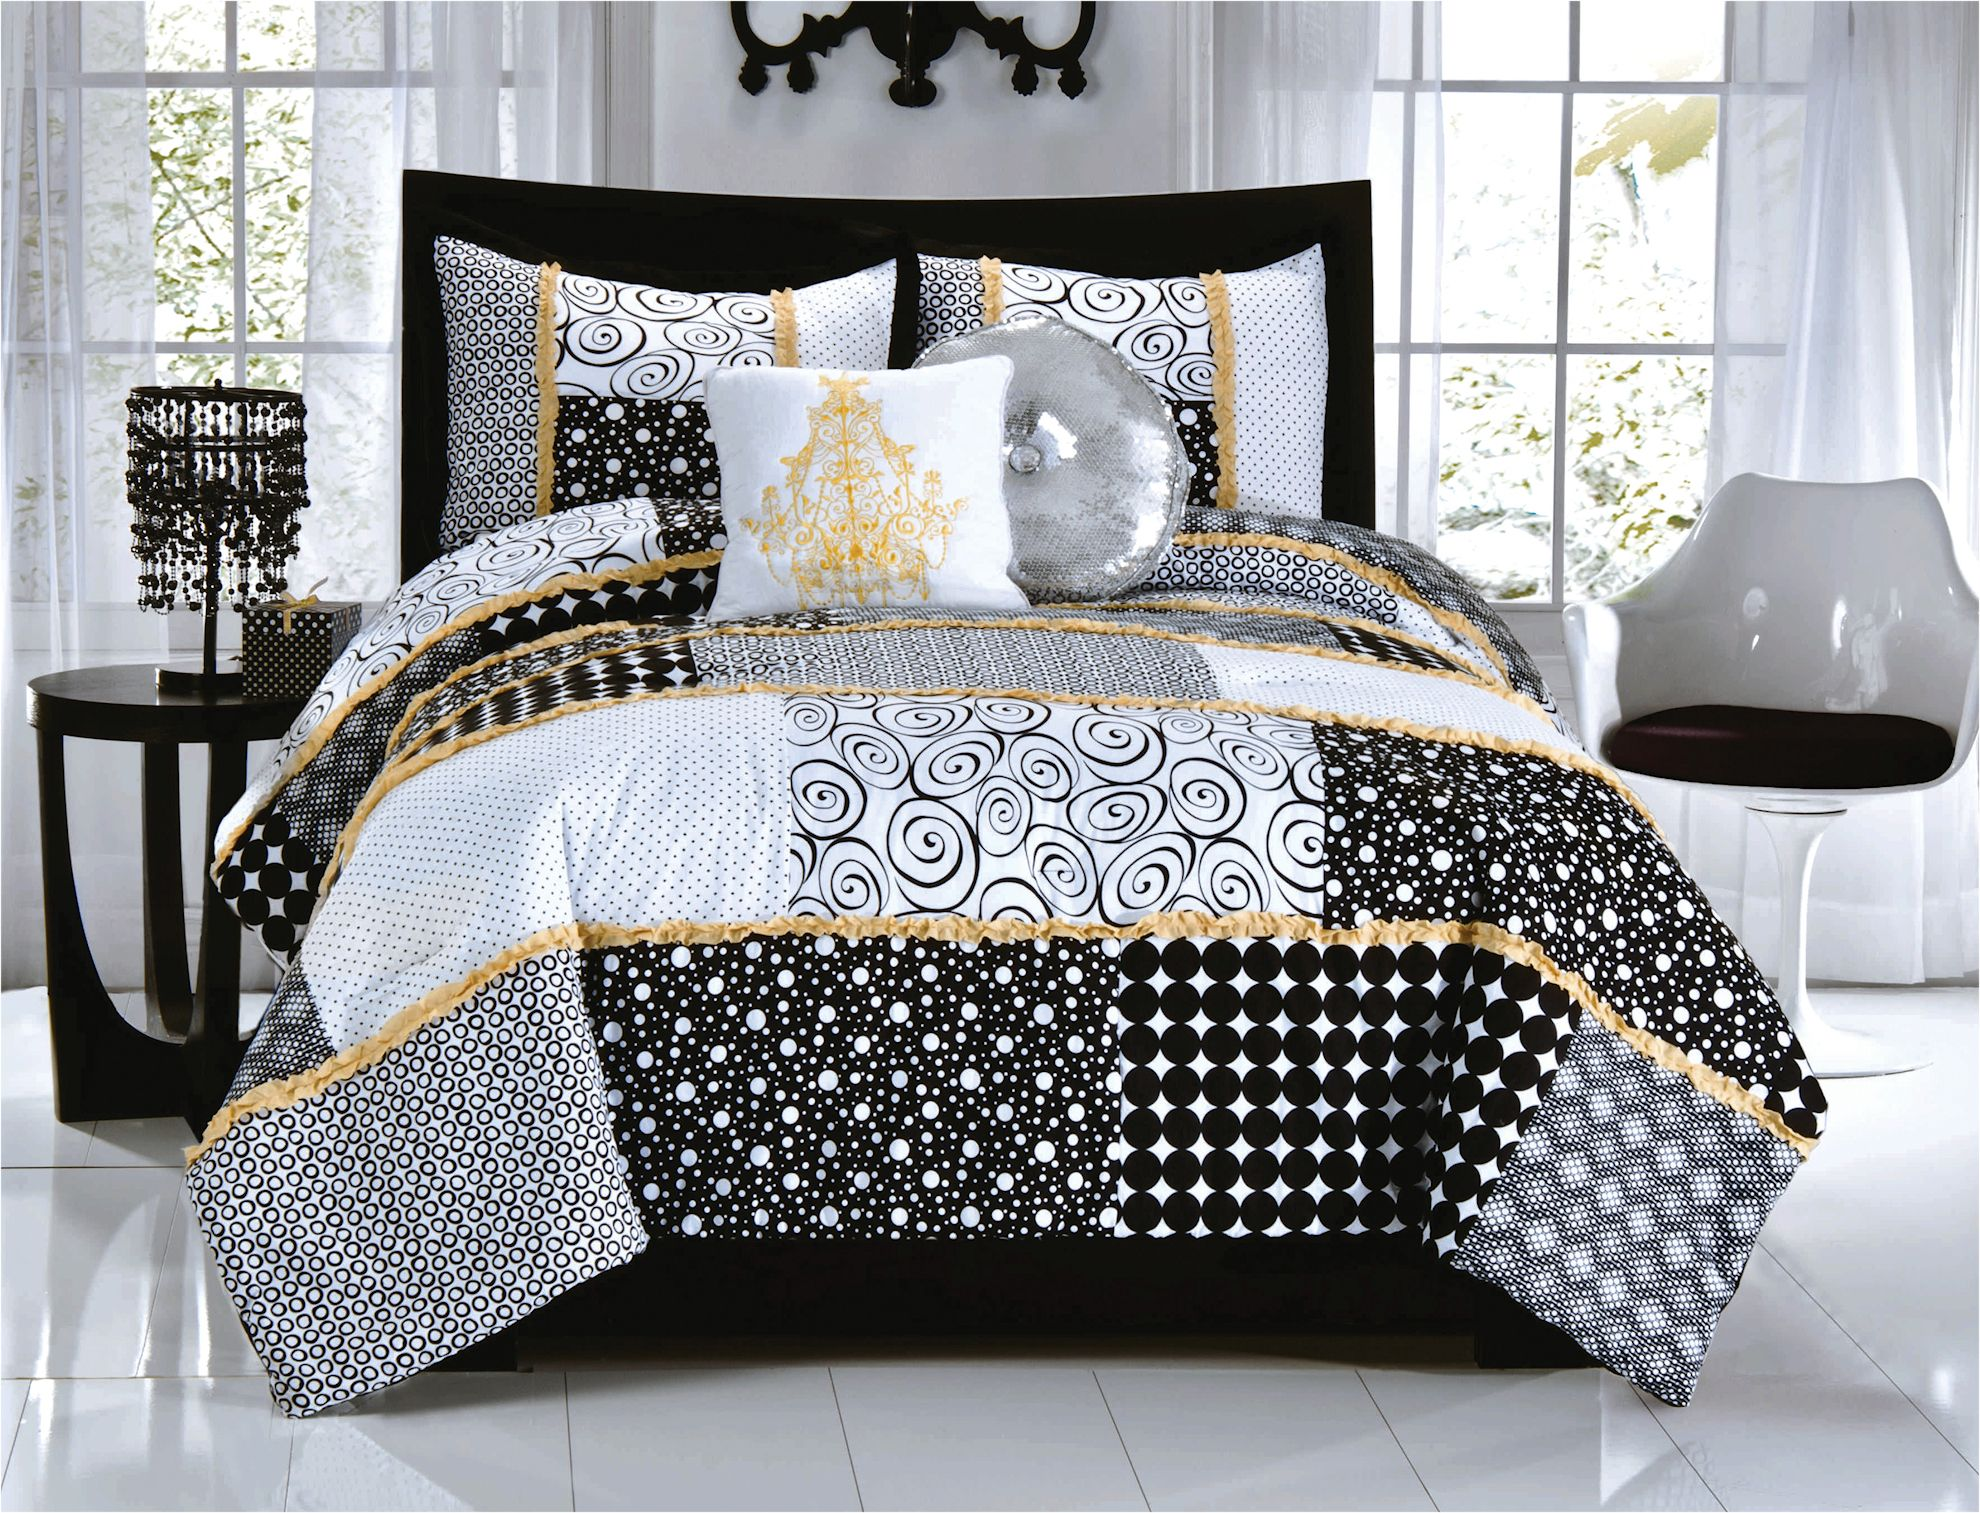 Elegant Black White Dot U0026 Scroll Teen Girl Bedding Twin Full/Queen  Comforter Set Gold Part 58